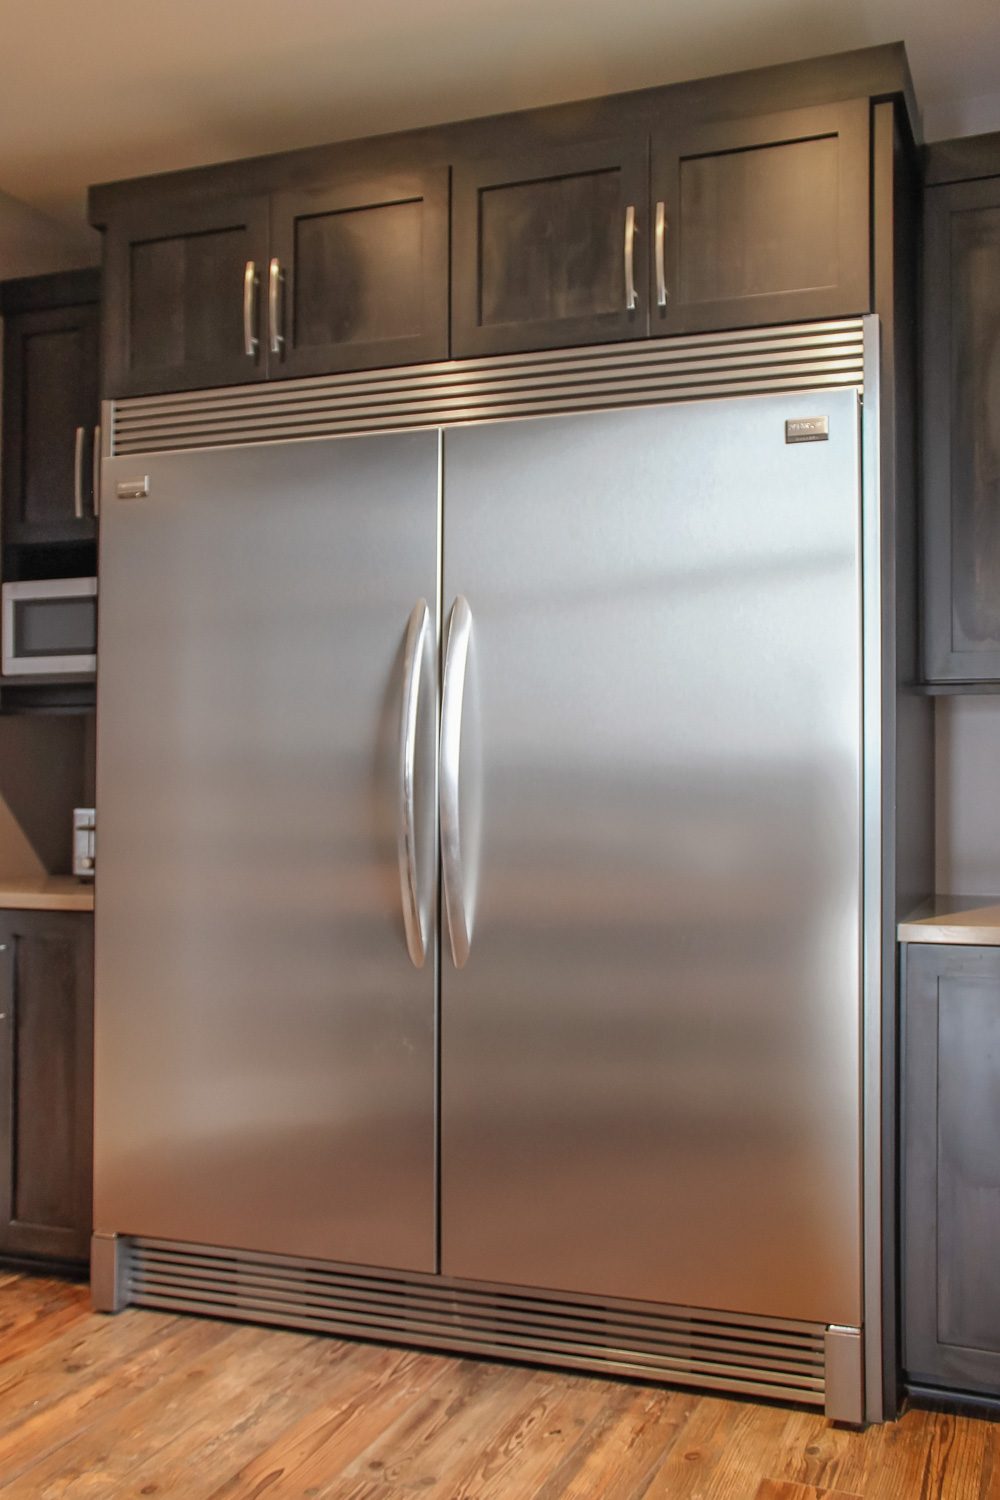 - This professional grade refrigerator and freezer combo was placed in the pantry. The kitchen design remains clean, and the pantry also contains a microwave and countertop space for ease of use.